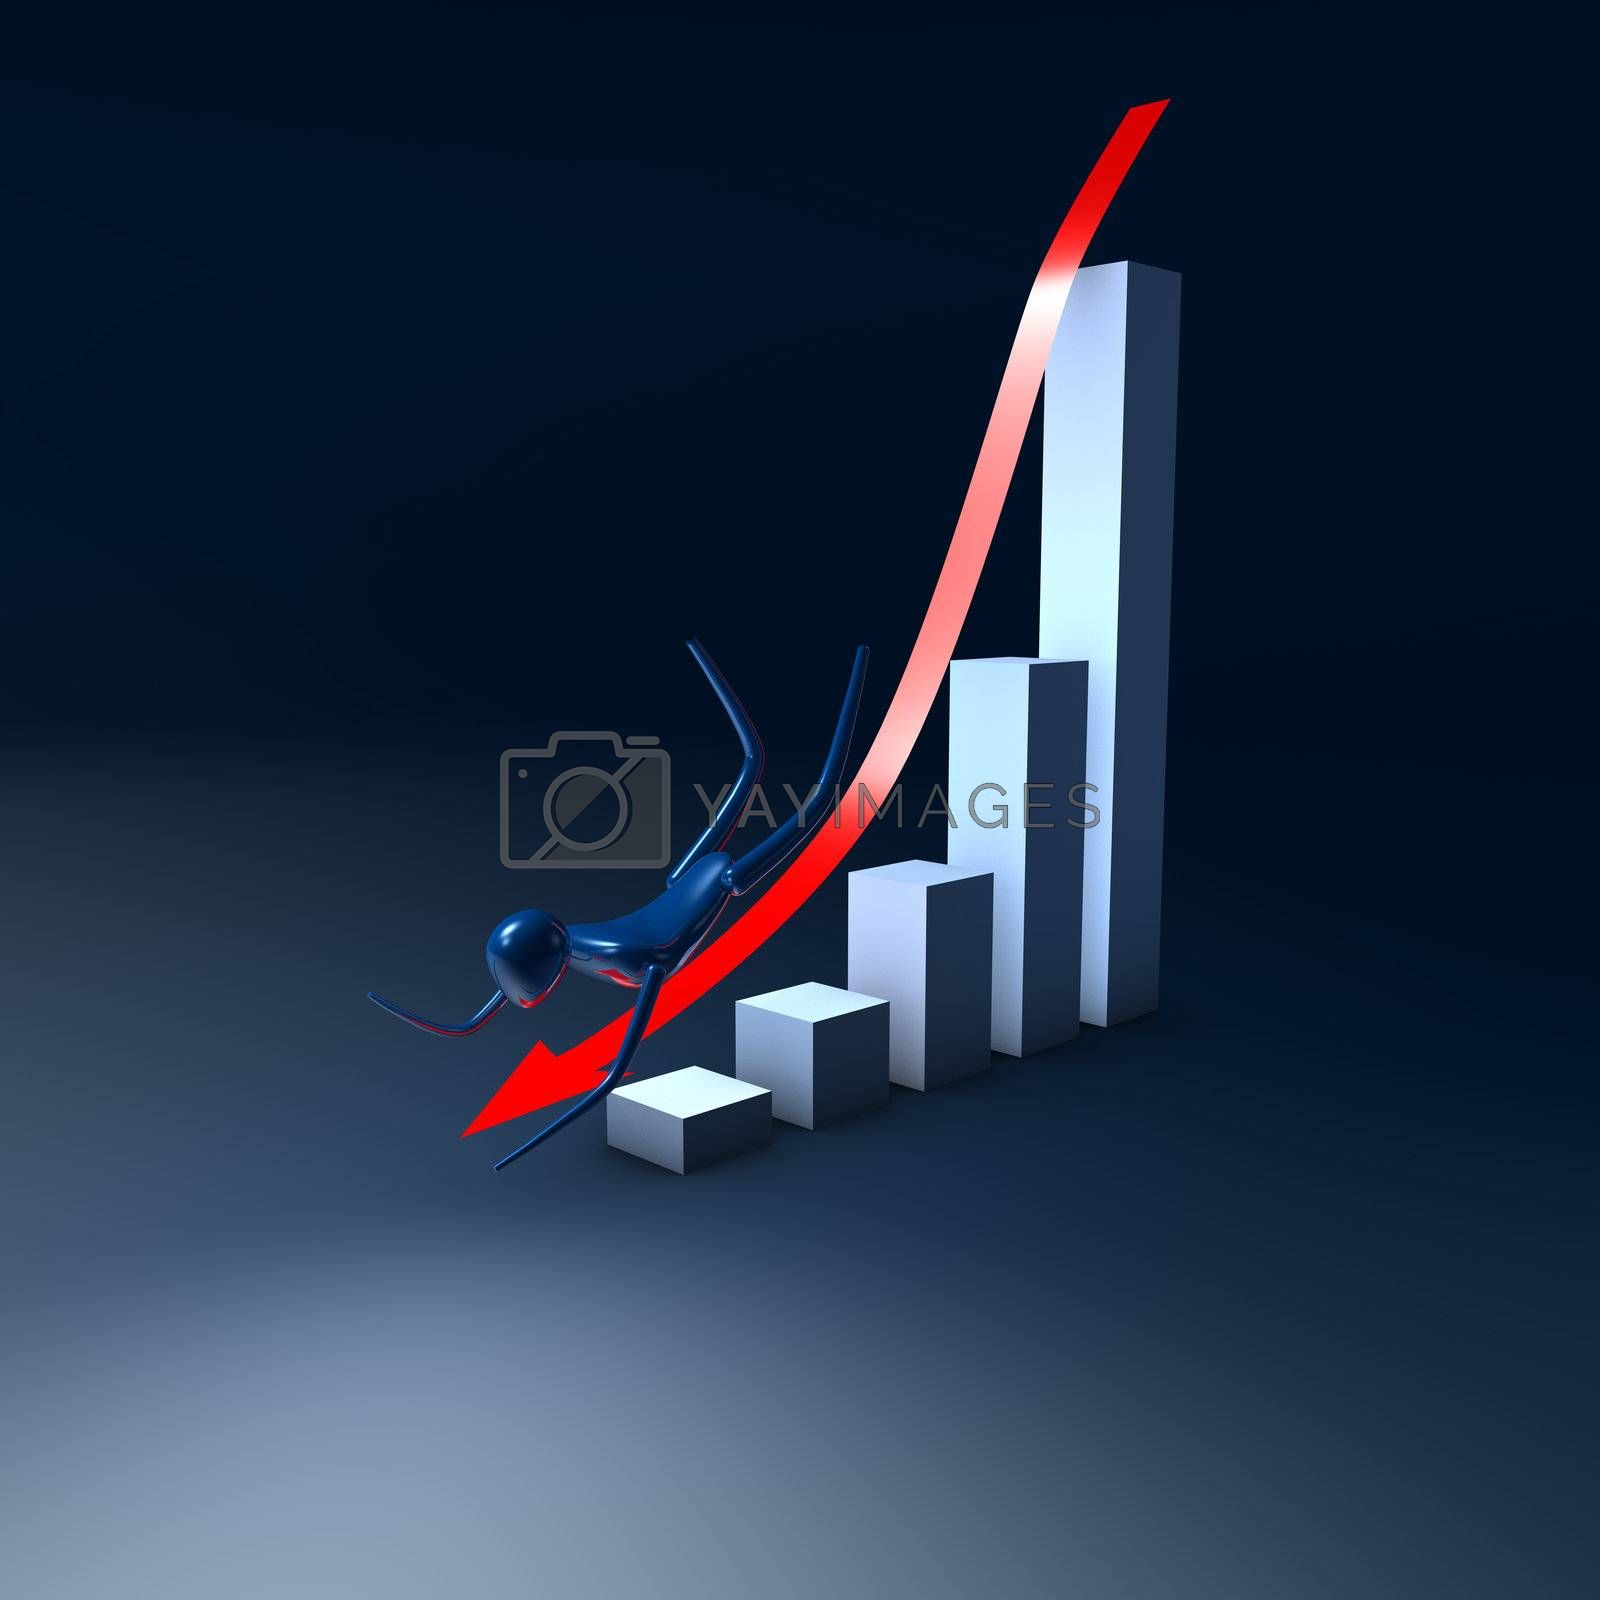 The arrow with man on the graph going down